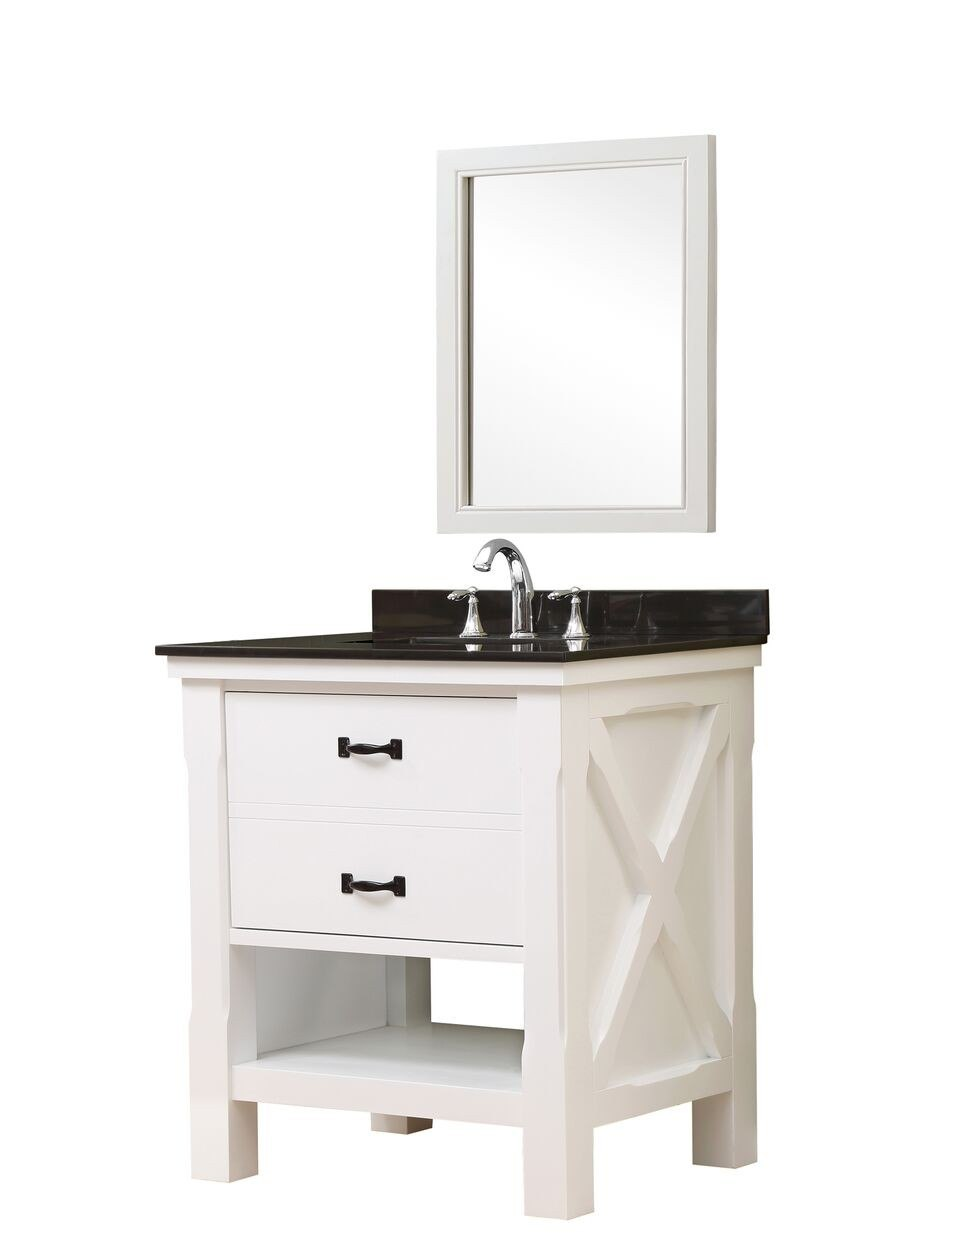 DIRECT VANITY SINK 32S1-WBK-M XTRAORDINARY SPA 32 INCH WHITE VANITY WITH BLACK GRANITE TOP AND MIRROR